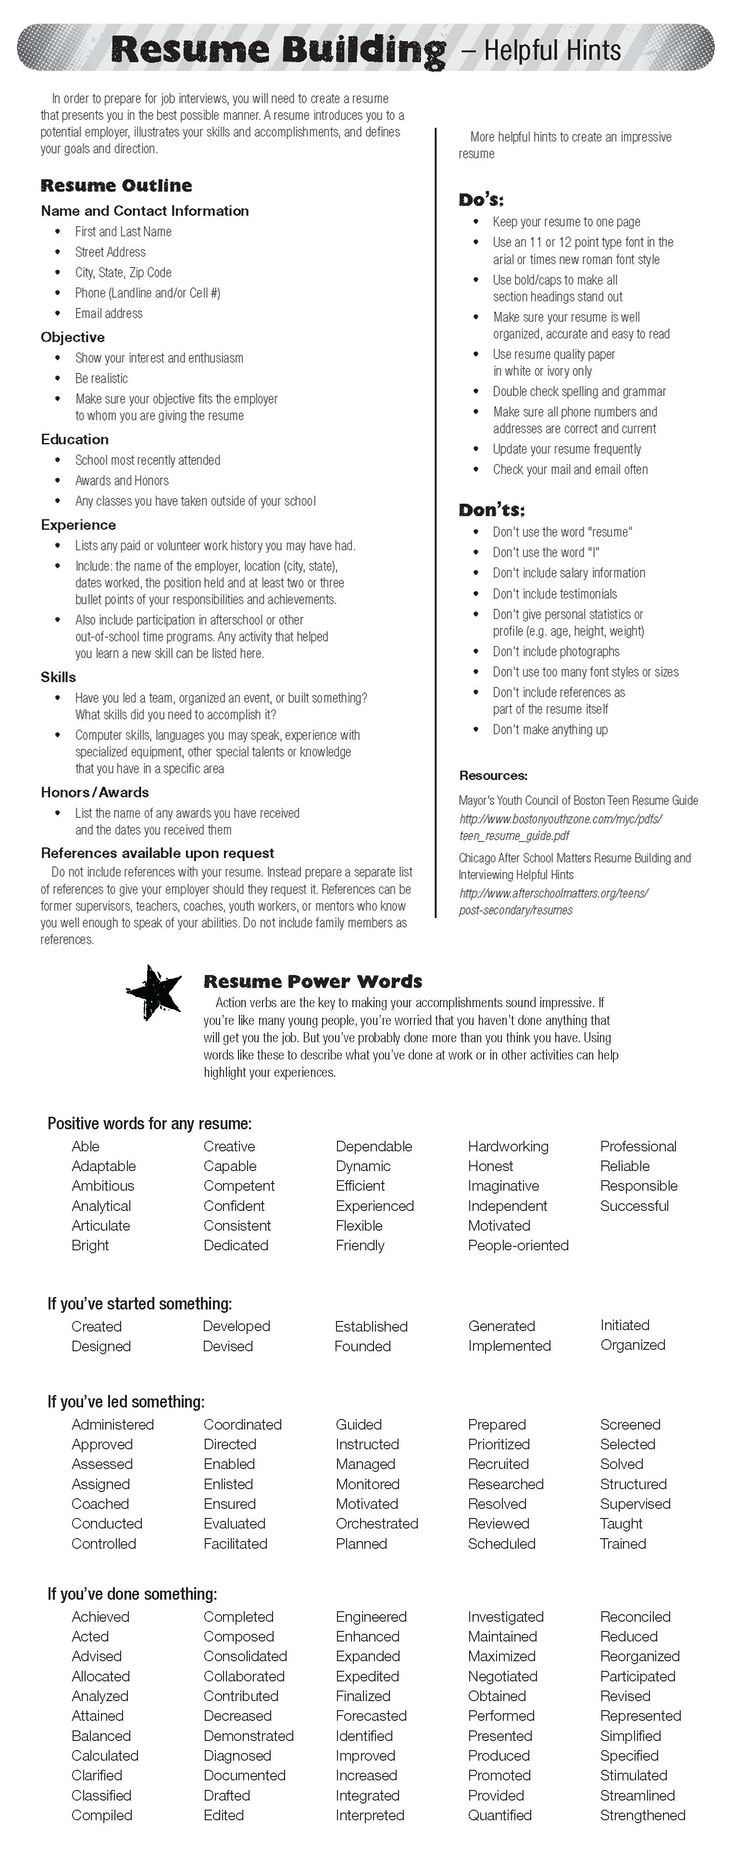 Opposenewapstandardsus  Nice  Ideas About Resume On Pinterest  Cv Format Resume Cv And  With Outstanding  Ideas About Resume On Pinterest  Cv Format Resume Cv And Resume Templates With Endearing Linkedin Resume Examples Also Resume Research In Addition Supervisor Resume Skills And Creating The Perfect Resume As Well As Police Officer Resume Samples Additionally Customer Service Associate Resume From Pinterestcom With Opposenewapstandardsus  Outstanding  Ideas About Resume On Pinterest  Cv Format Resume Cv And  With Endearing  Ideas About Resume On Pinterest  Cv Format Resume Cv And Resume Templates And Nice Linkedin Resume Examples Also Resume Research In Addition Supervisor Resume Skills From Pinterestcom